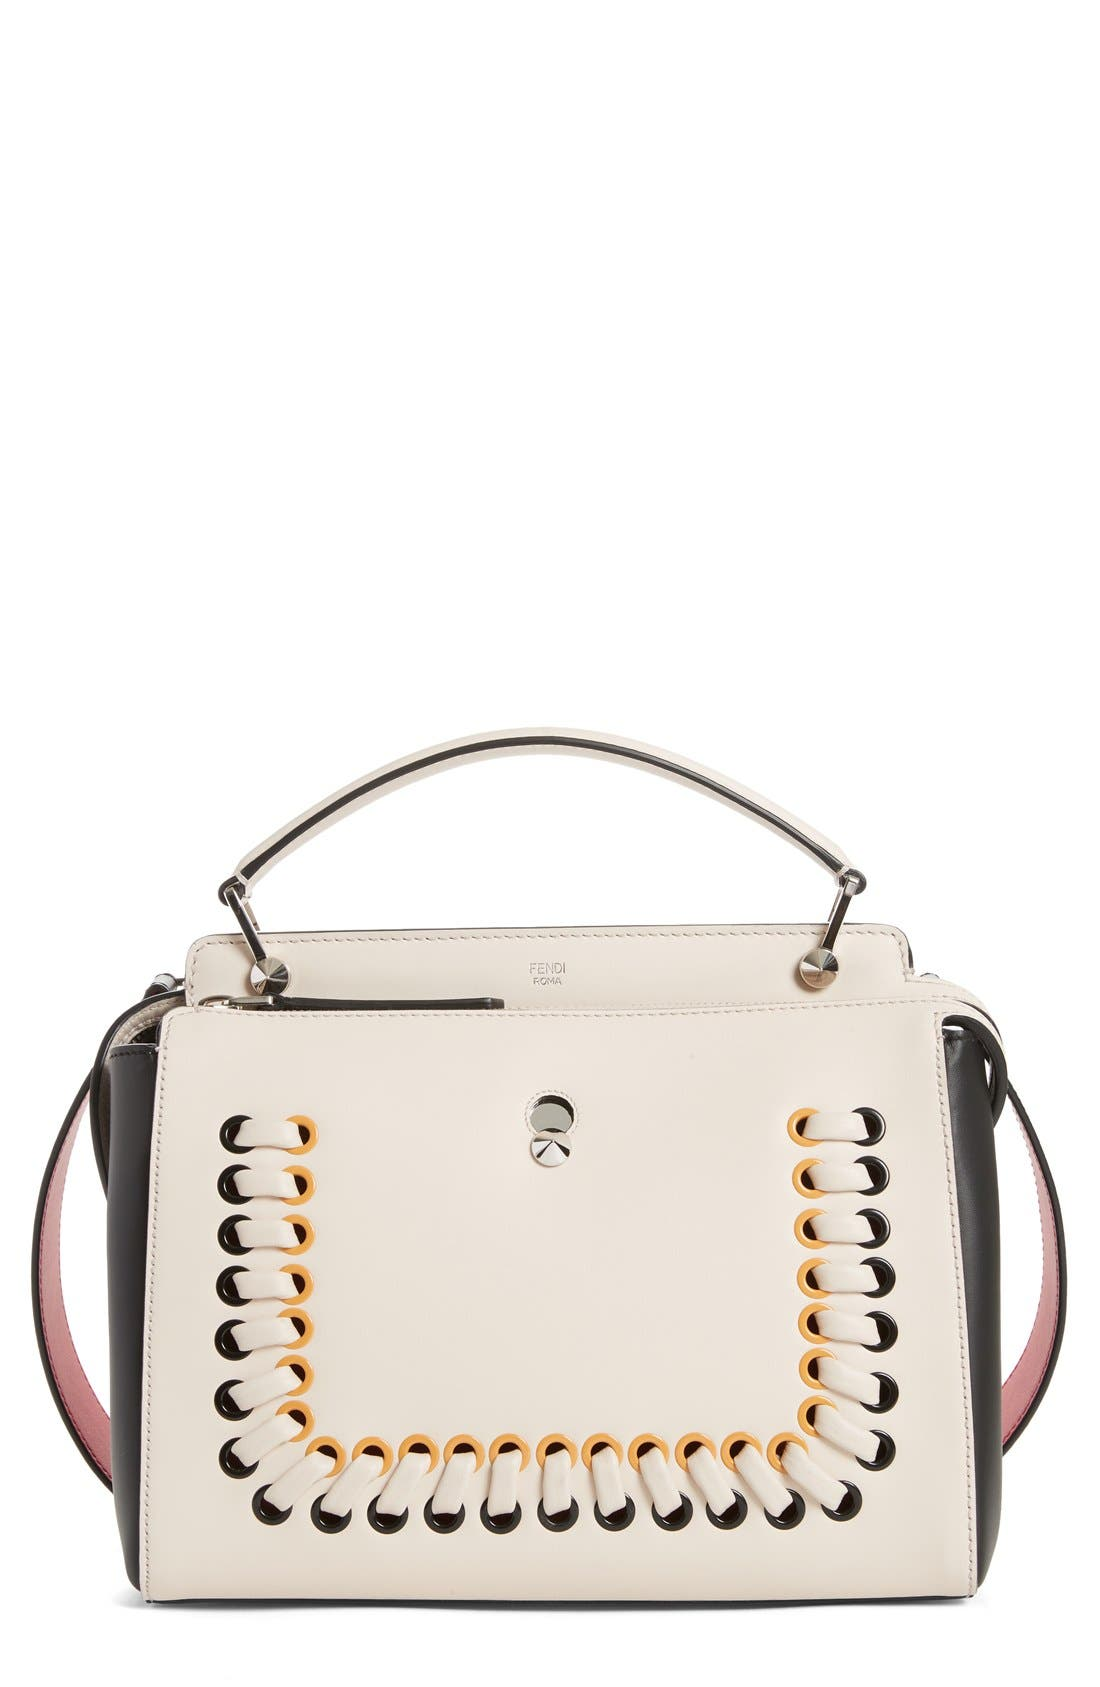 DOTCOM Tricolor Whipstich Calfskin Satchel,                         Main,                         color, White/ Brown/ Yellow